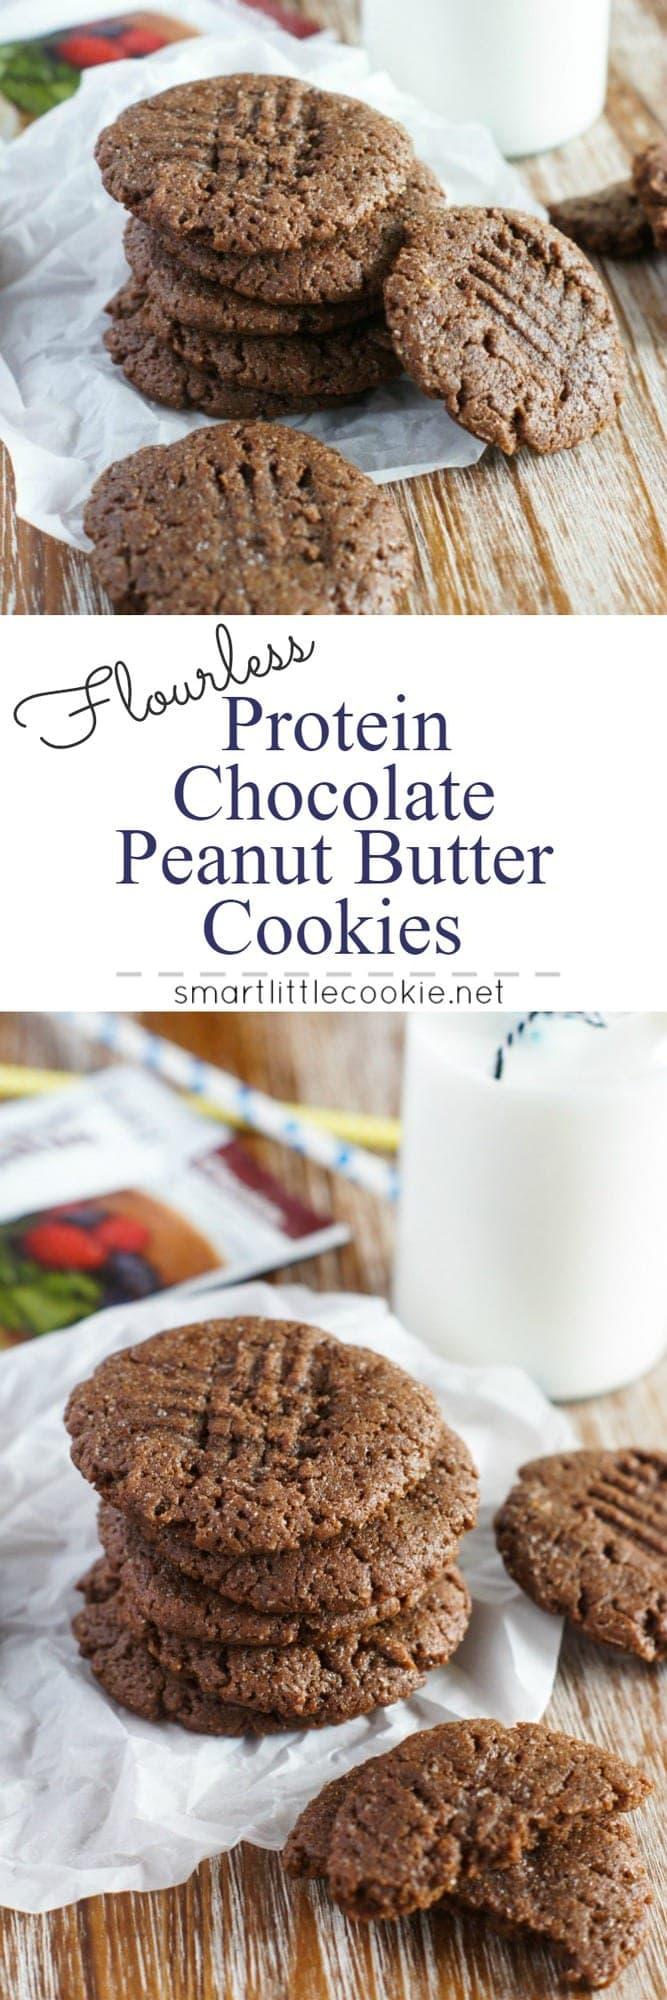 Crispy on the outside and gooey on the inside, these flourless protein chocolate peanut butter cookies are a delicious protein pack treat to enjoy after a workout. smartlittlecookie.net #cookies #peanutbutter